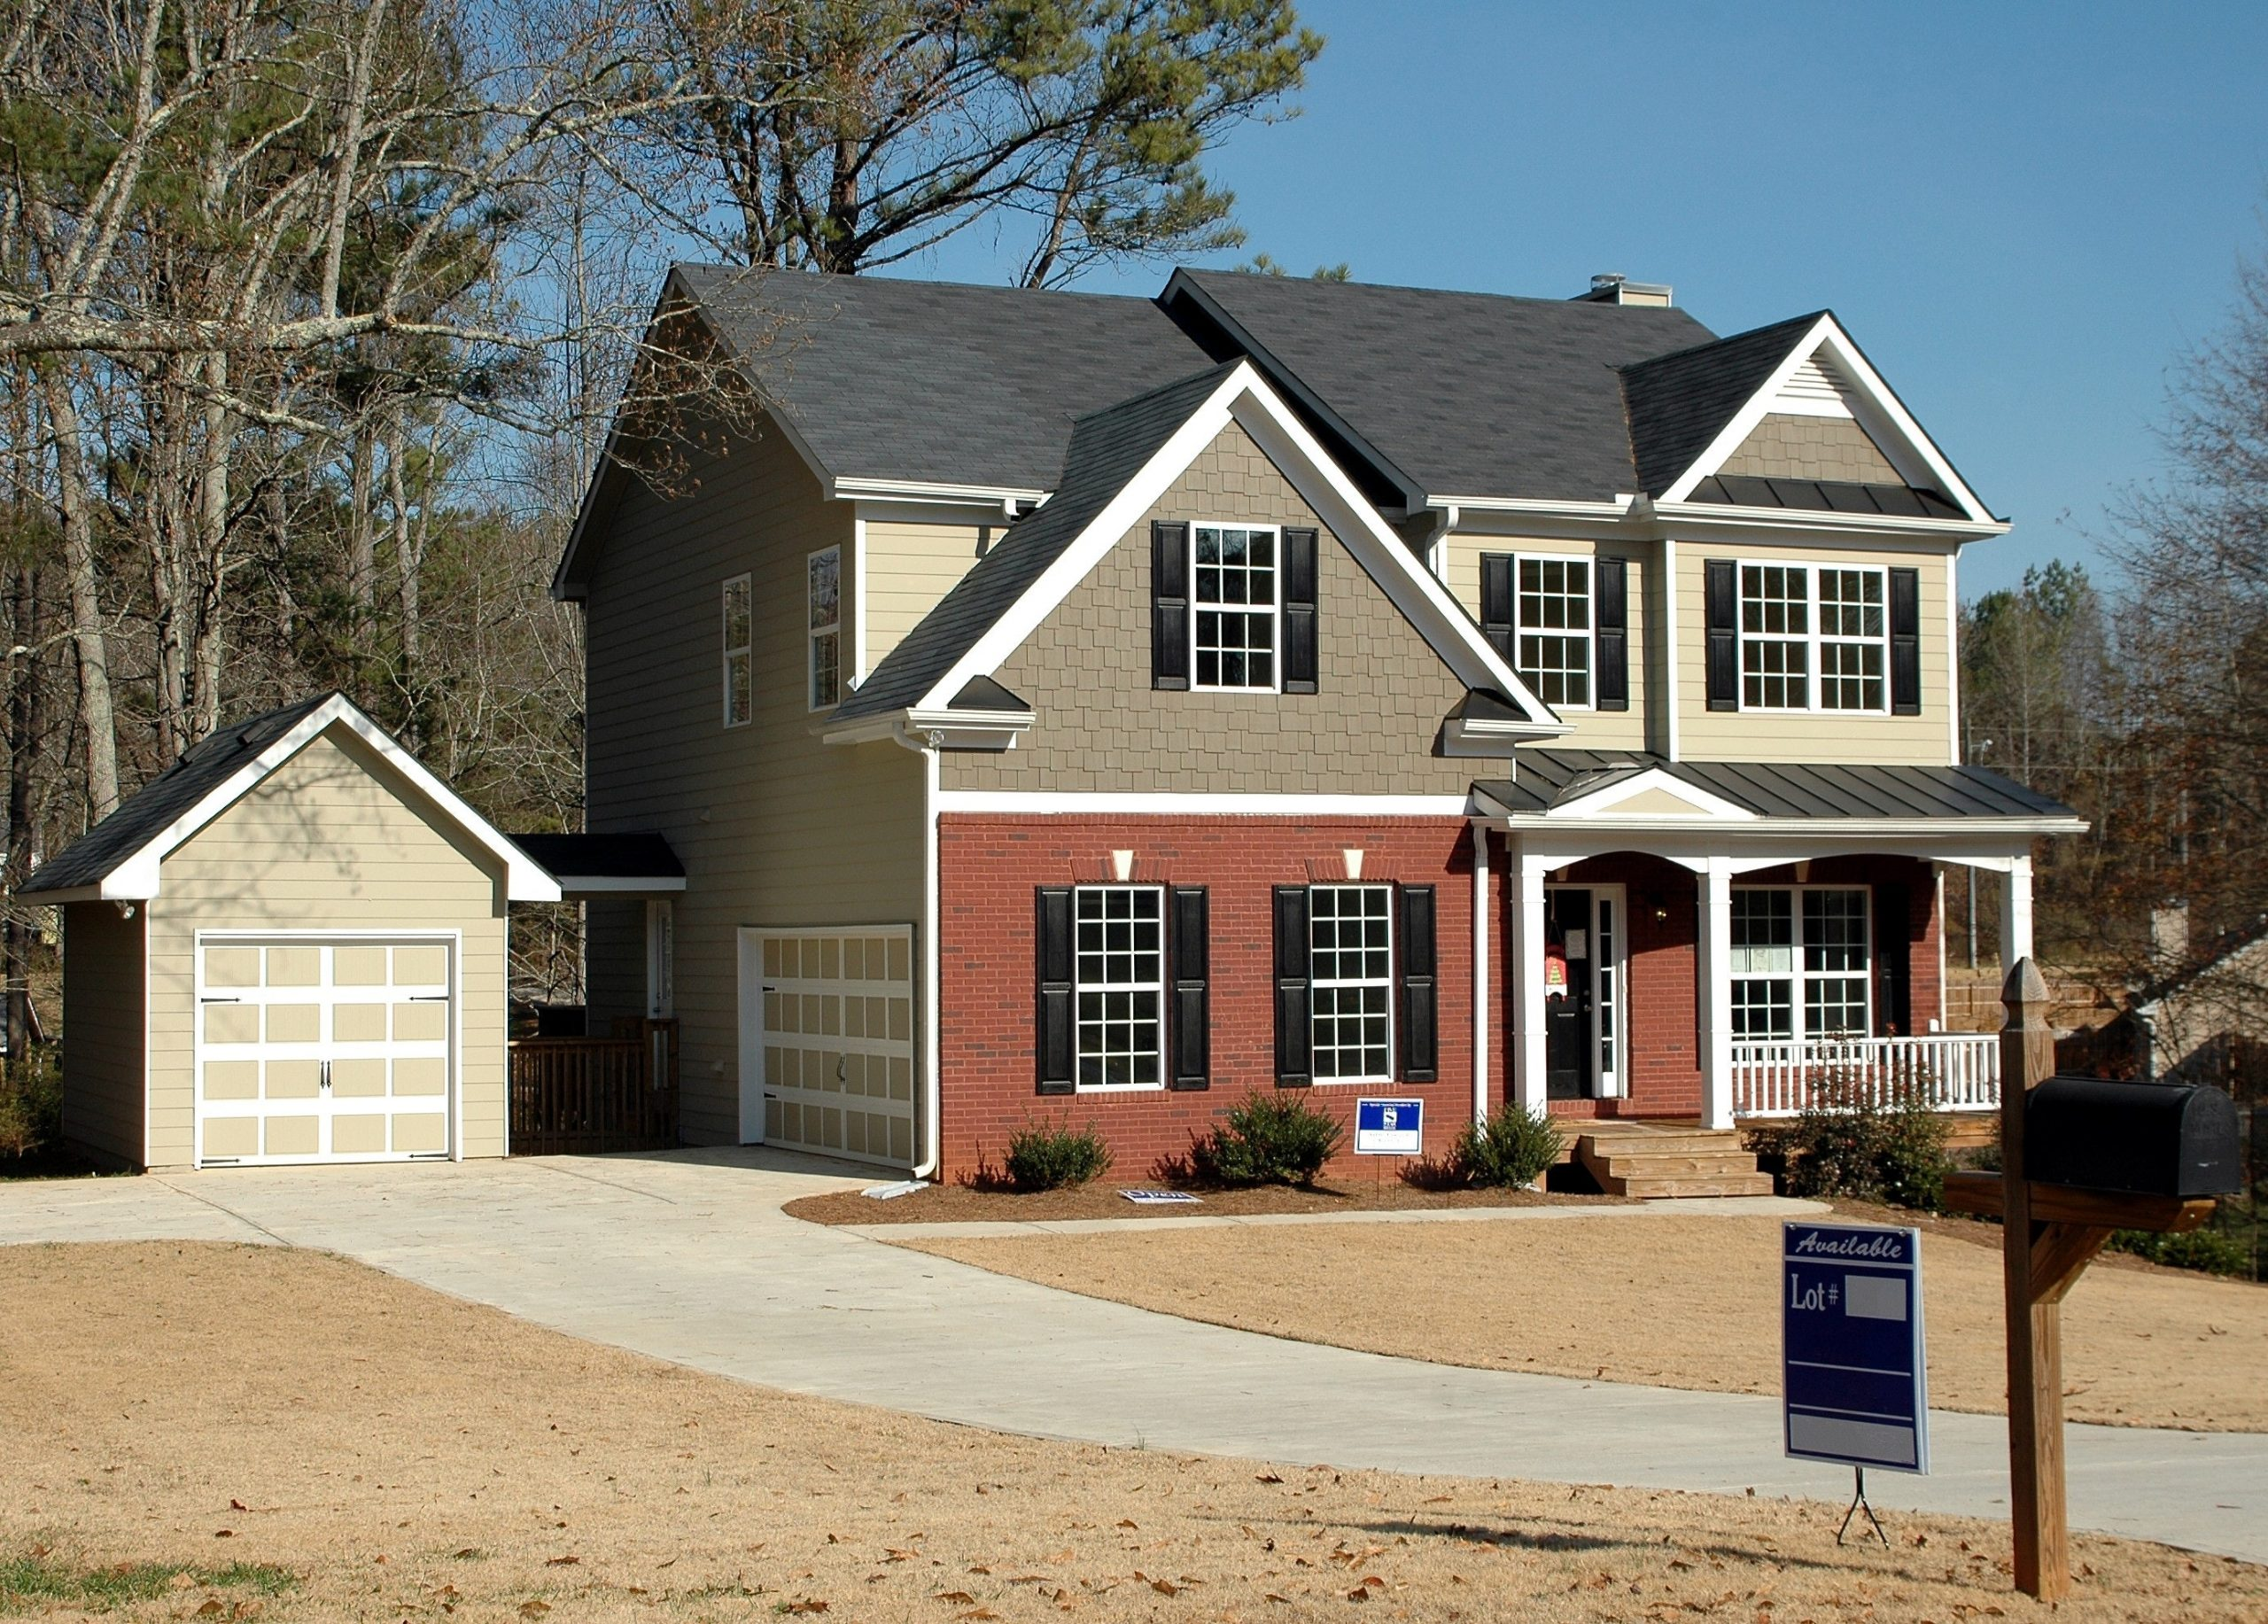 the front of a large house with a sale sign; Selling Your Home At The Right Price Is Easy When You Know How